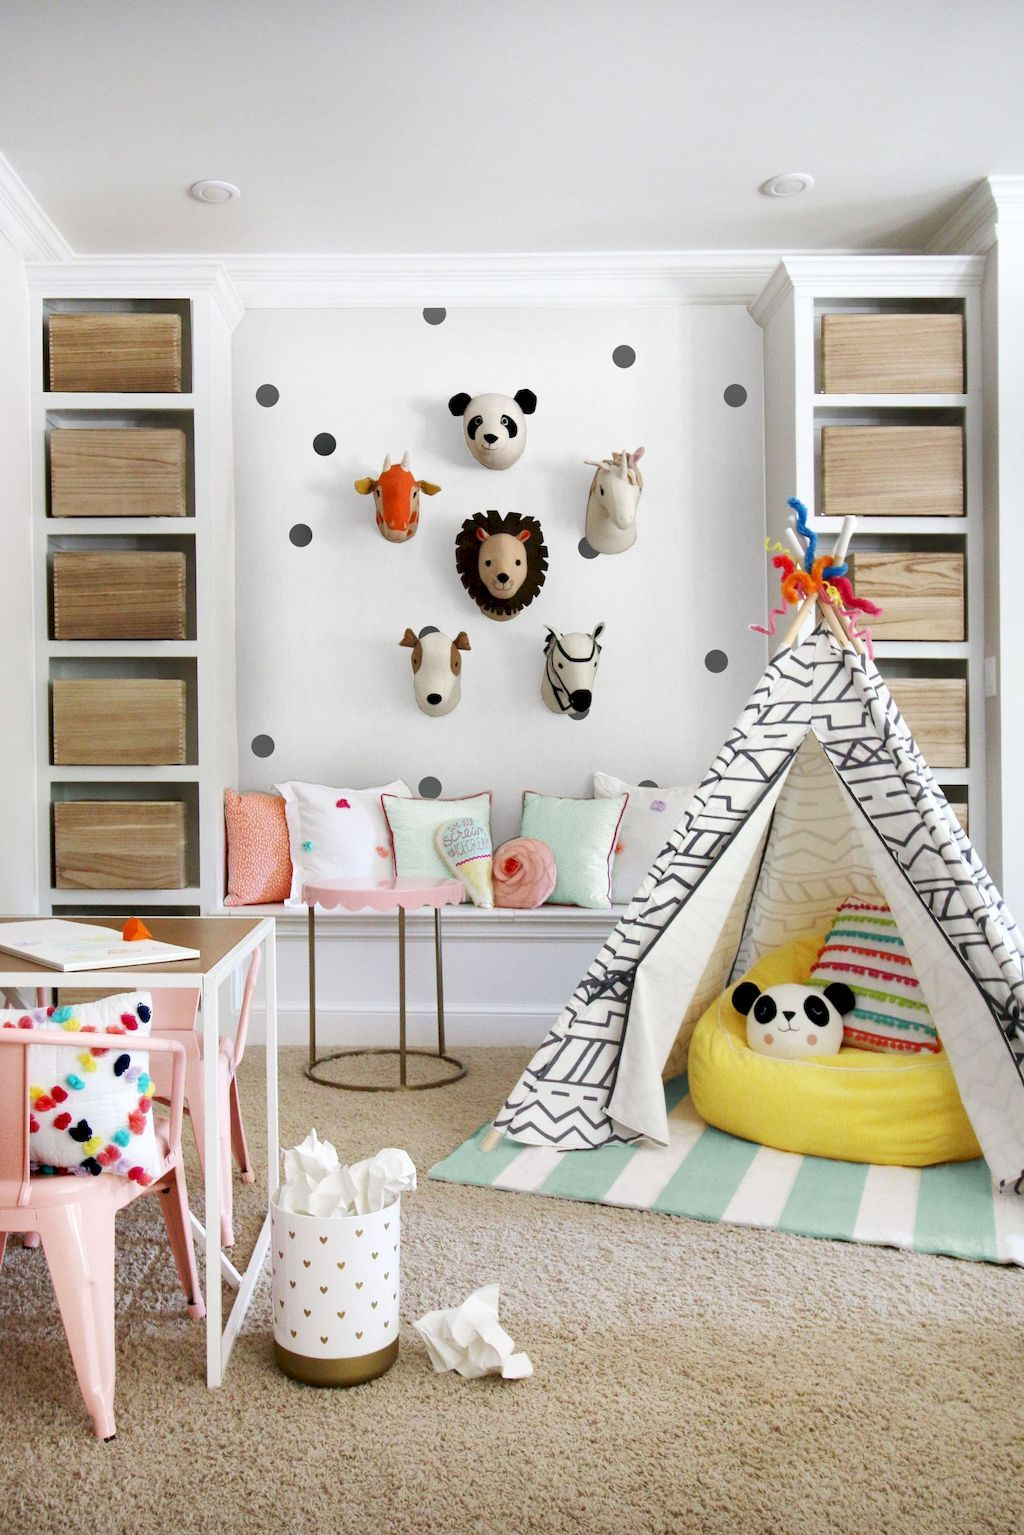 Awesome 44 Insane Beautiful Kids Playroom Design Decor Ideas Https Lovelyving Com 2017 09 20 44 Insane Beautiful K Kid Room Decor Playroom Decor Kid Spaces Beautiful kids playrooms from